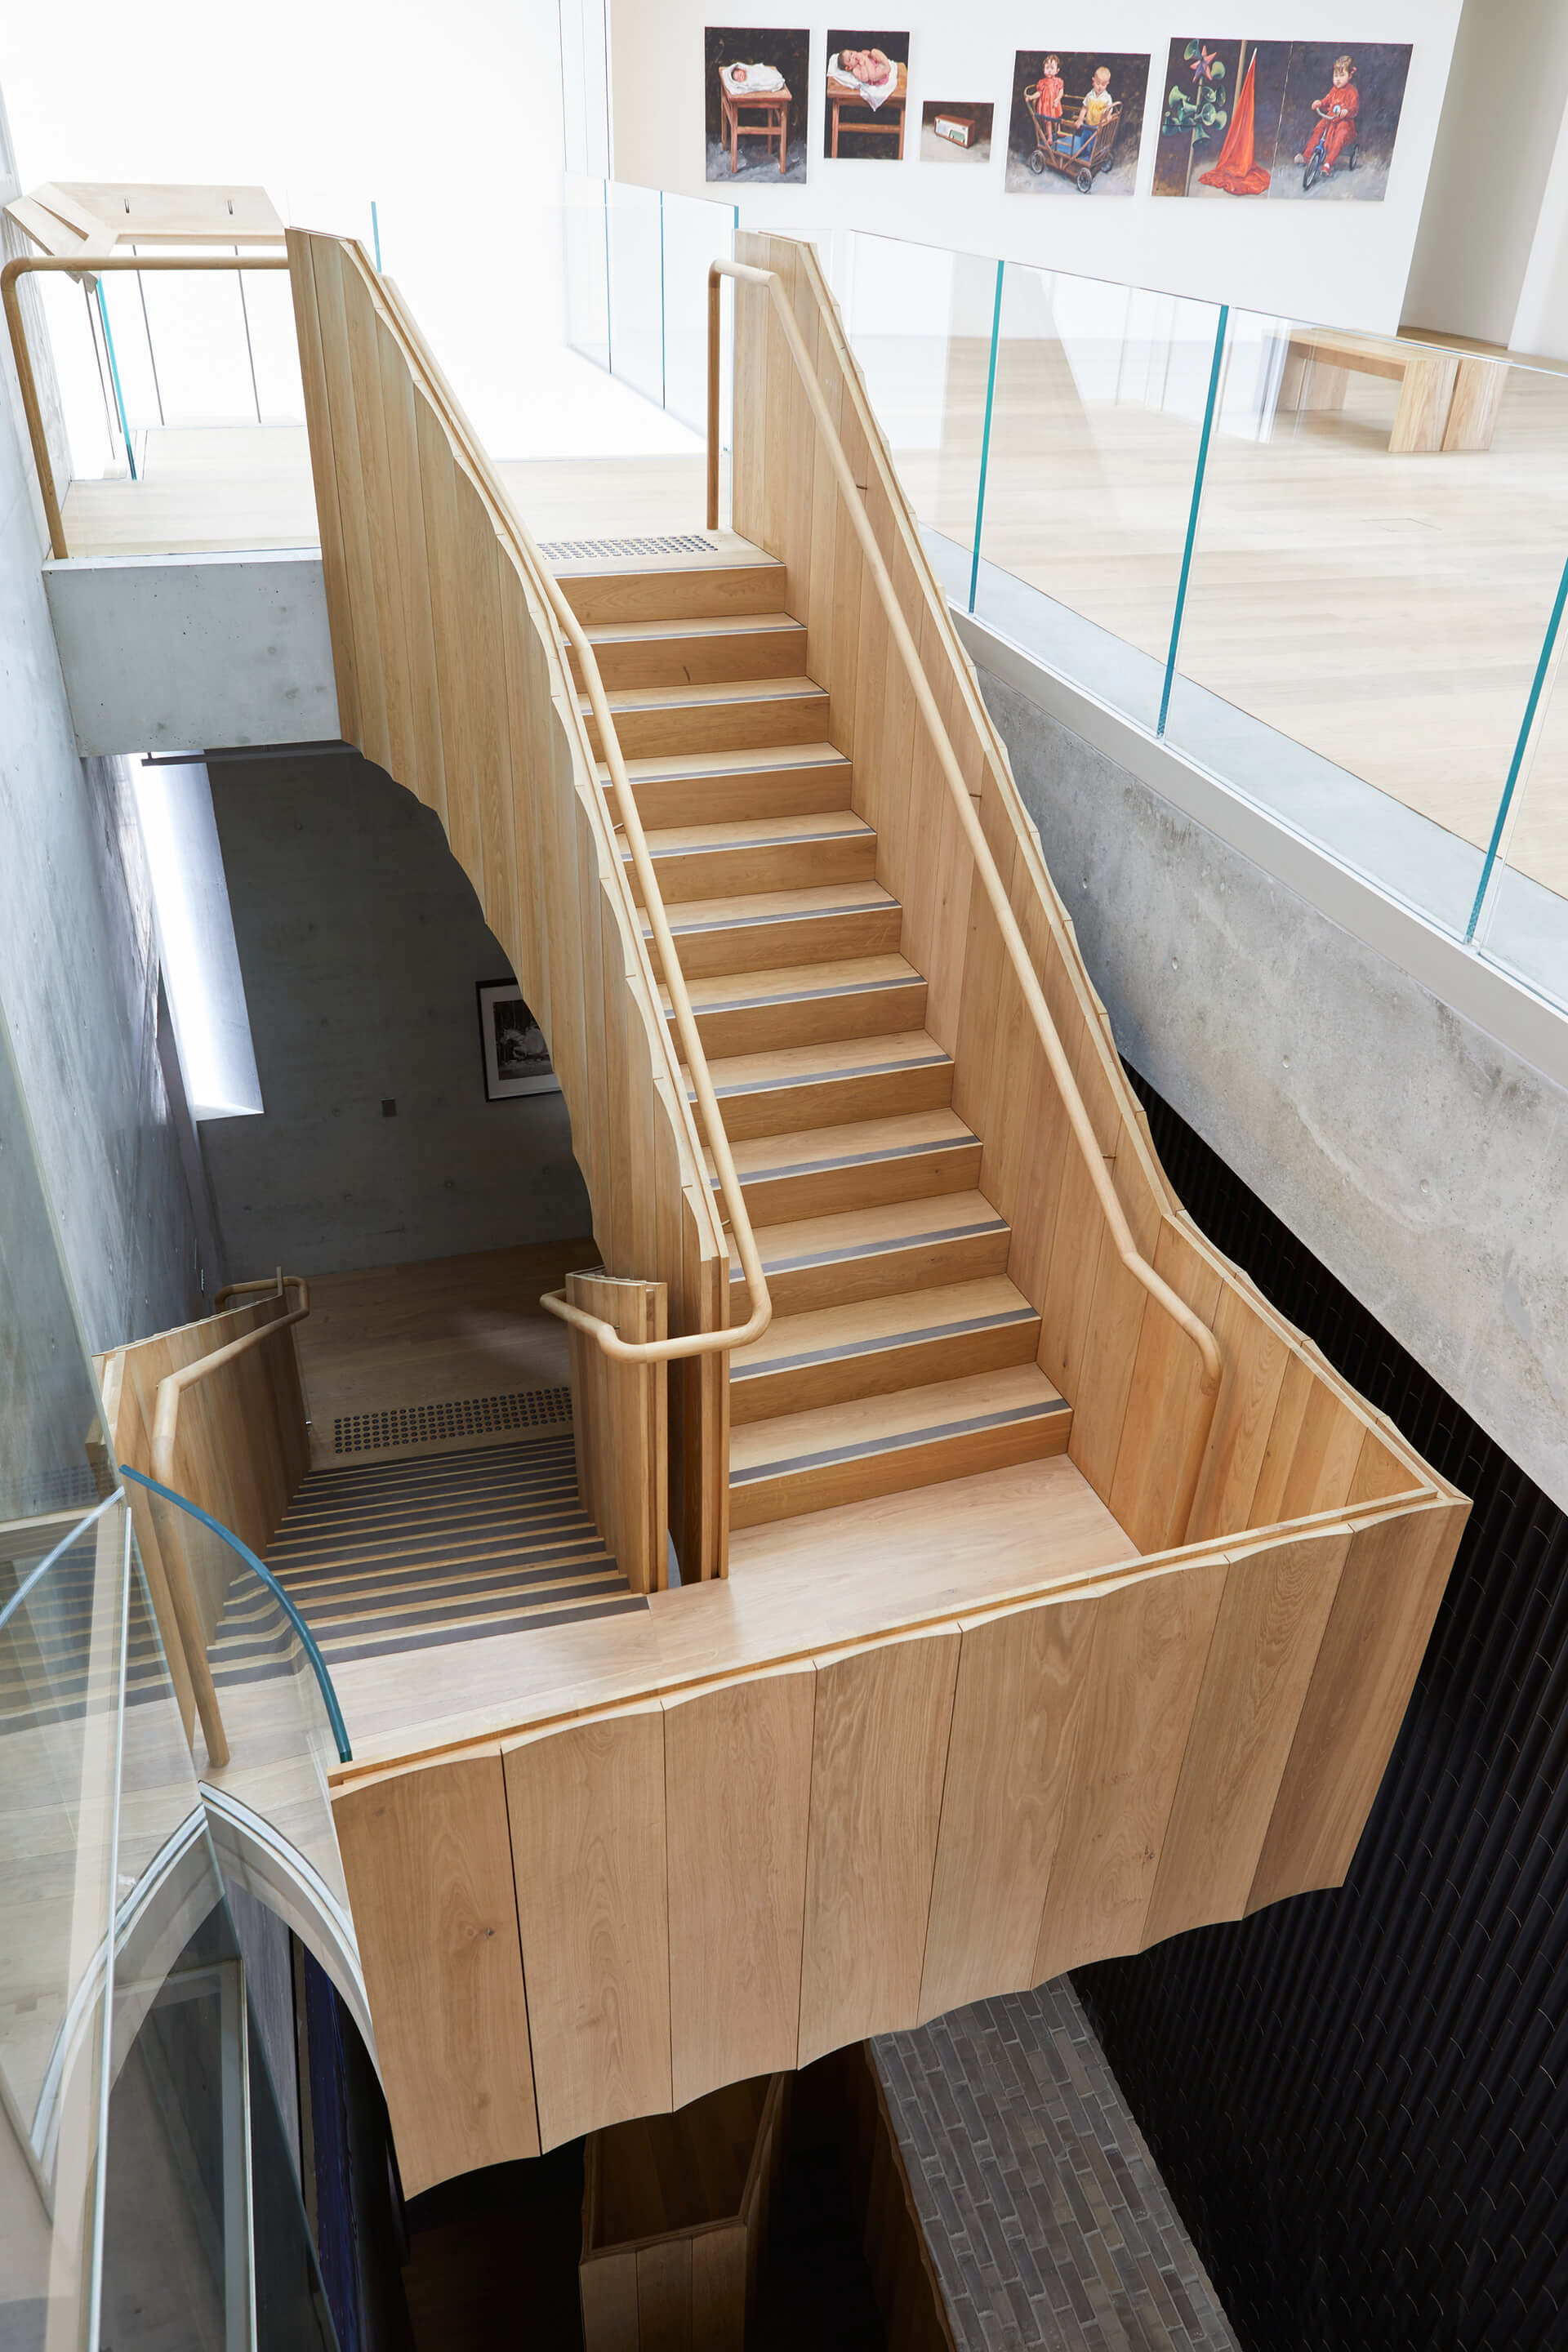 The staircase in the gallery space | Phoenix Central Park | Durbach Block Jaggers and John Wardle Architects | STIRworld